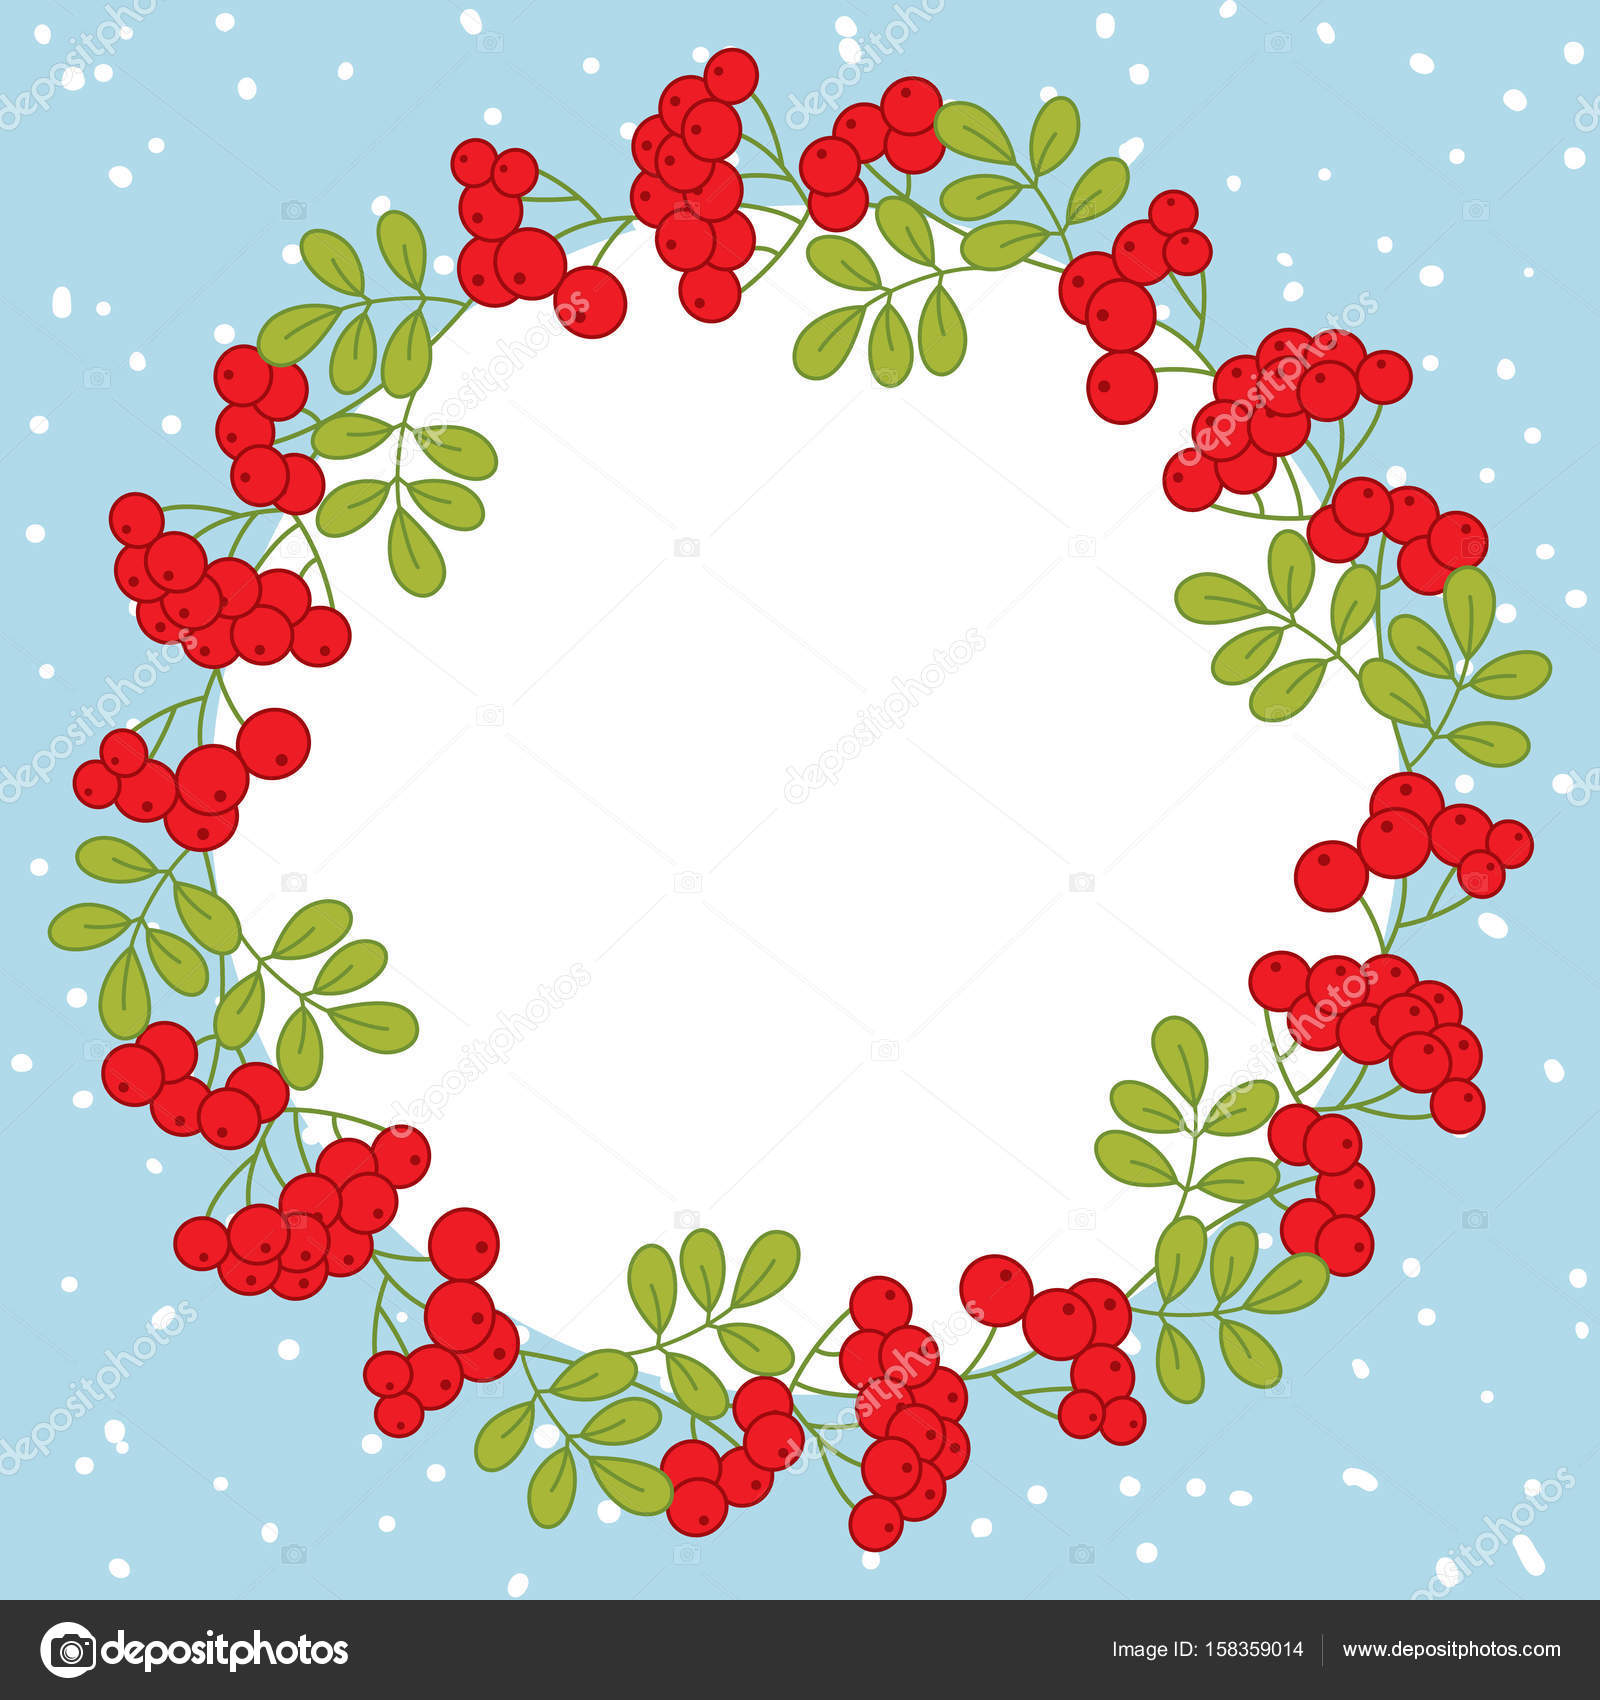 vector christmas and new year card template with wreath and red berries on snow background